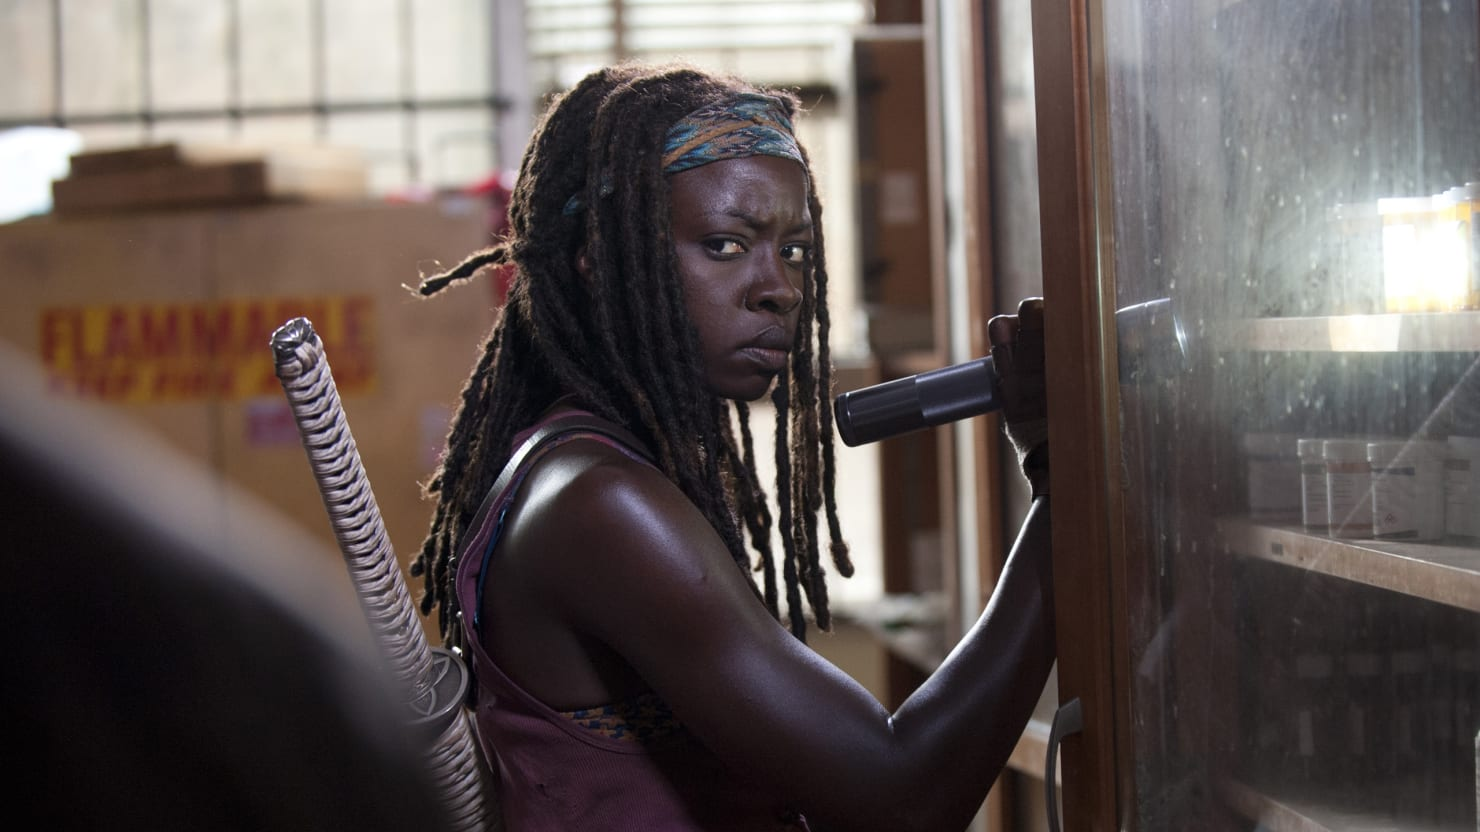 Danai Gurira, Who Plays Michonne, Says 'The Walking Dead